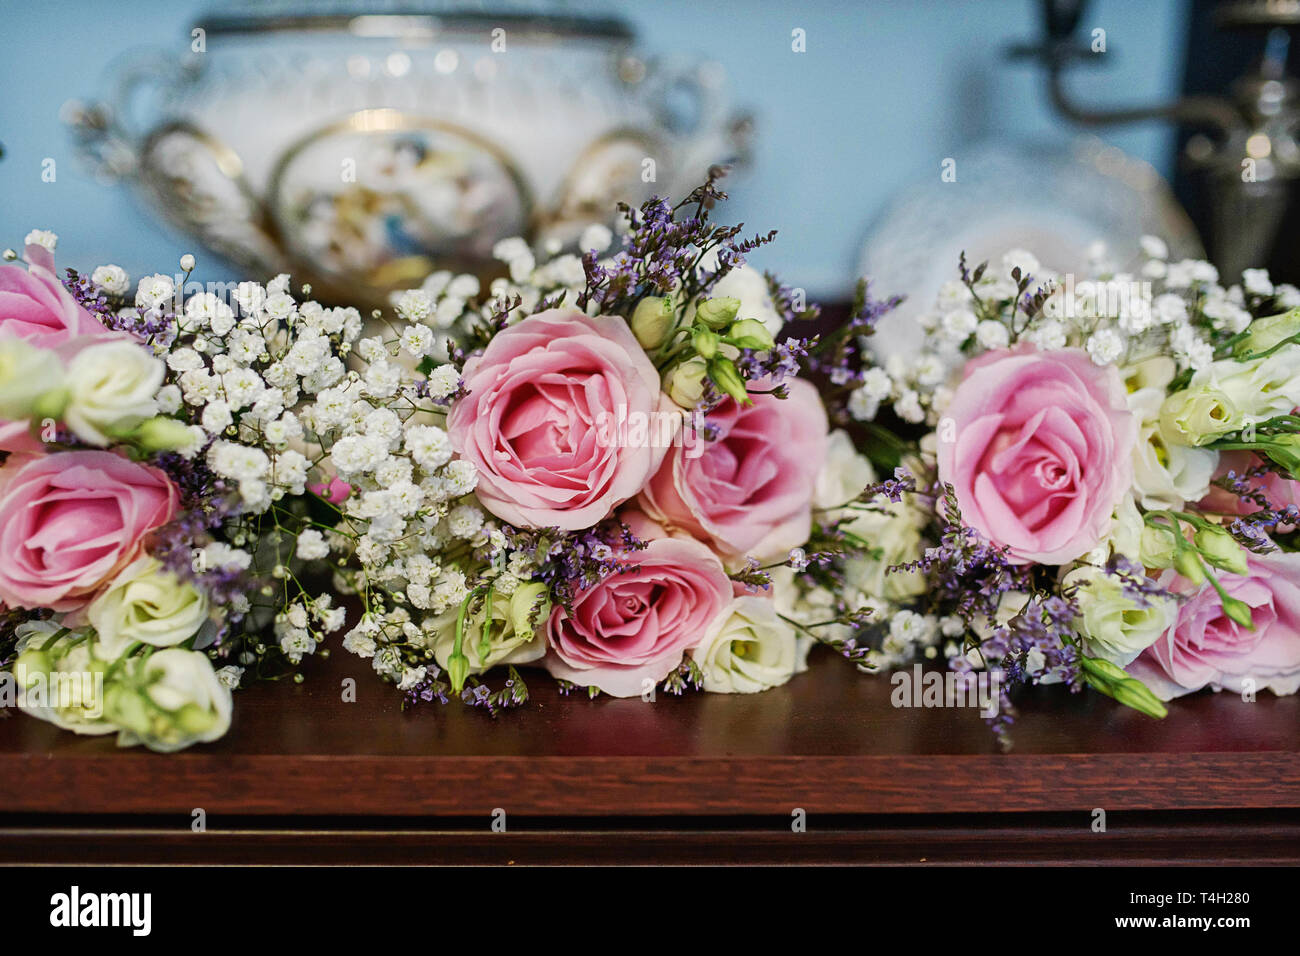 https www alamy com large centerpiece with pink and white roses and fresh foliage suitable as a decor for table centerpieces at a wedding reception ceremony or at party image243778752 html